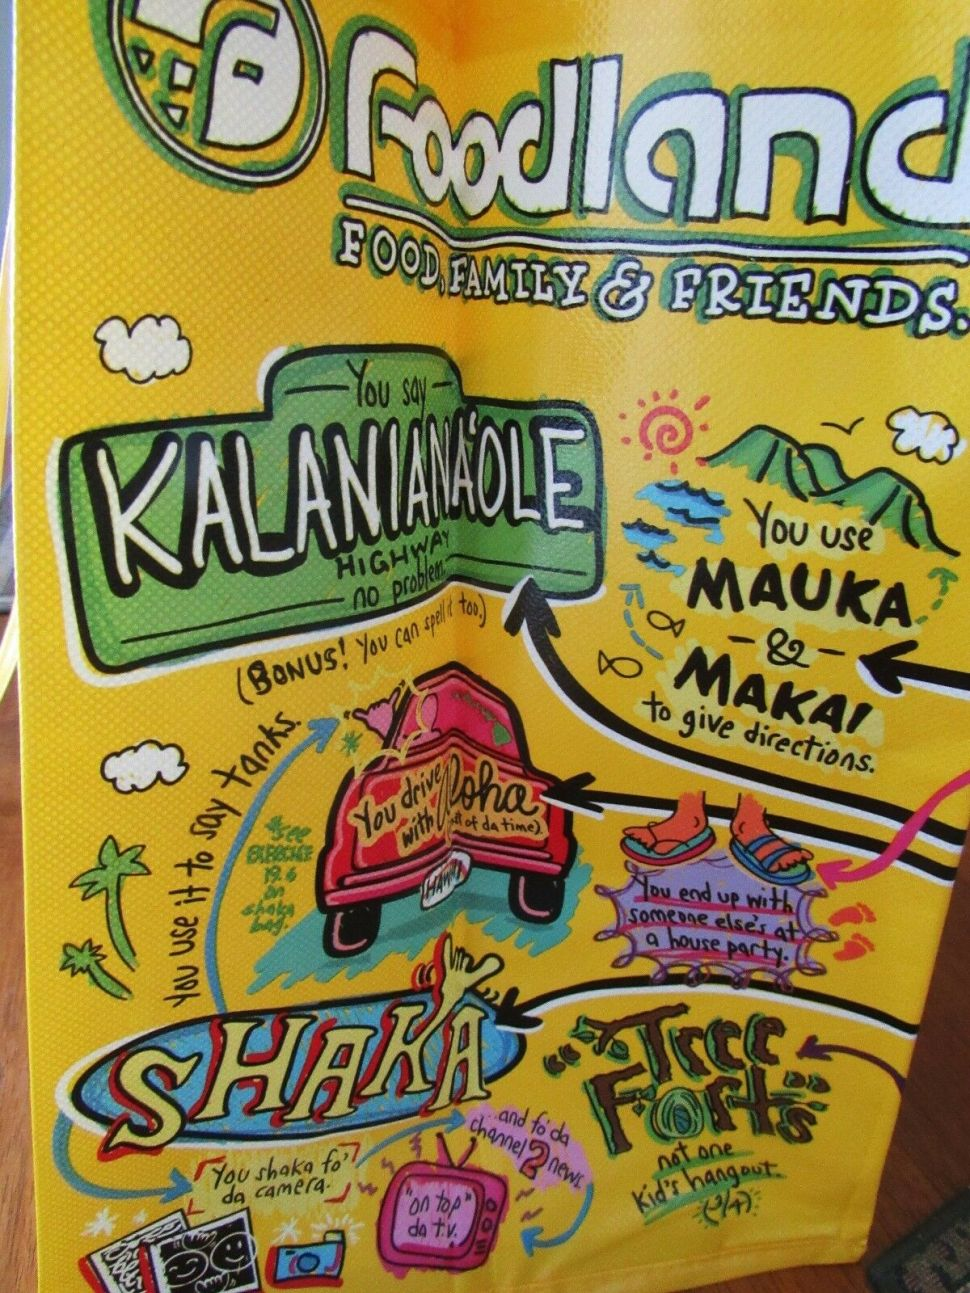 Hawaiian grocery store explains local culture on the side of its reusable bags